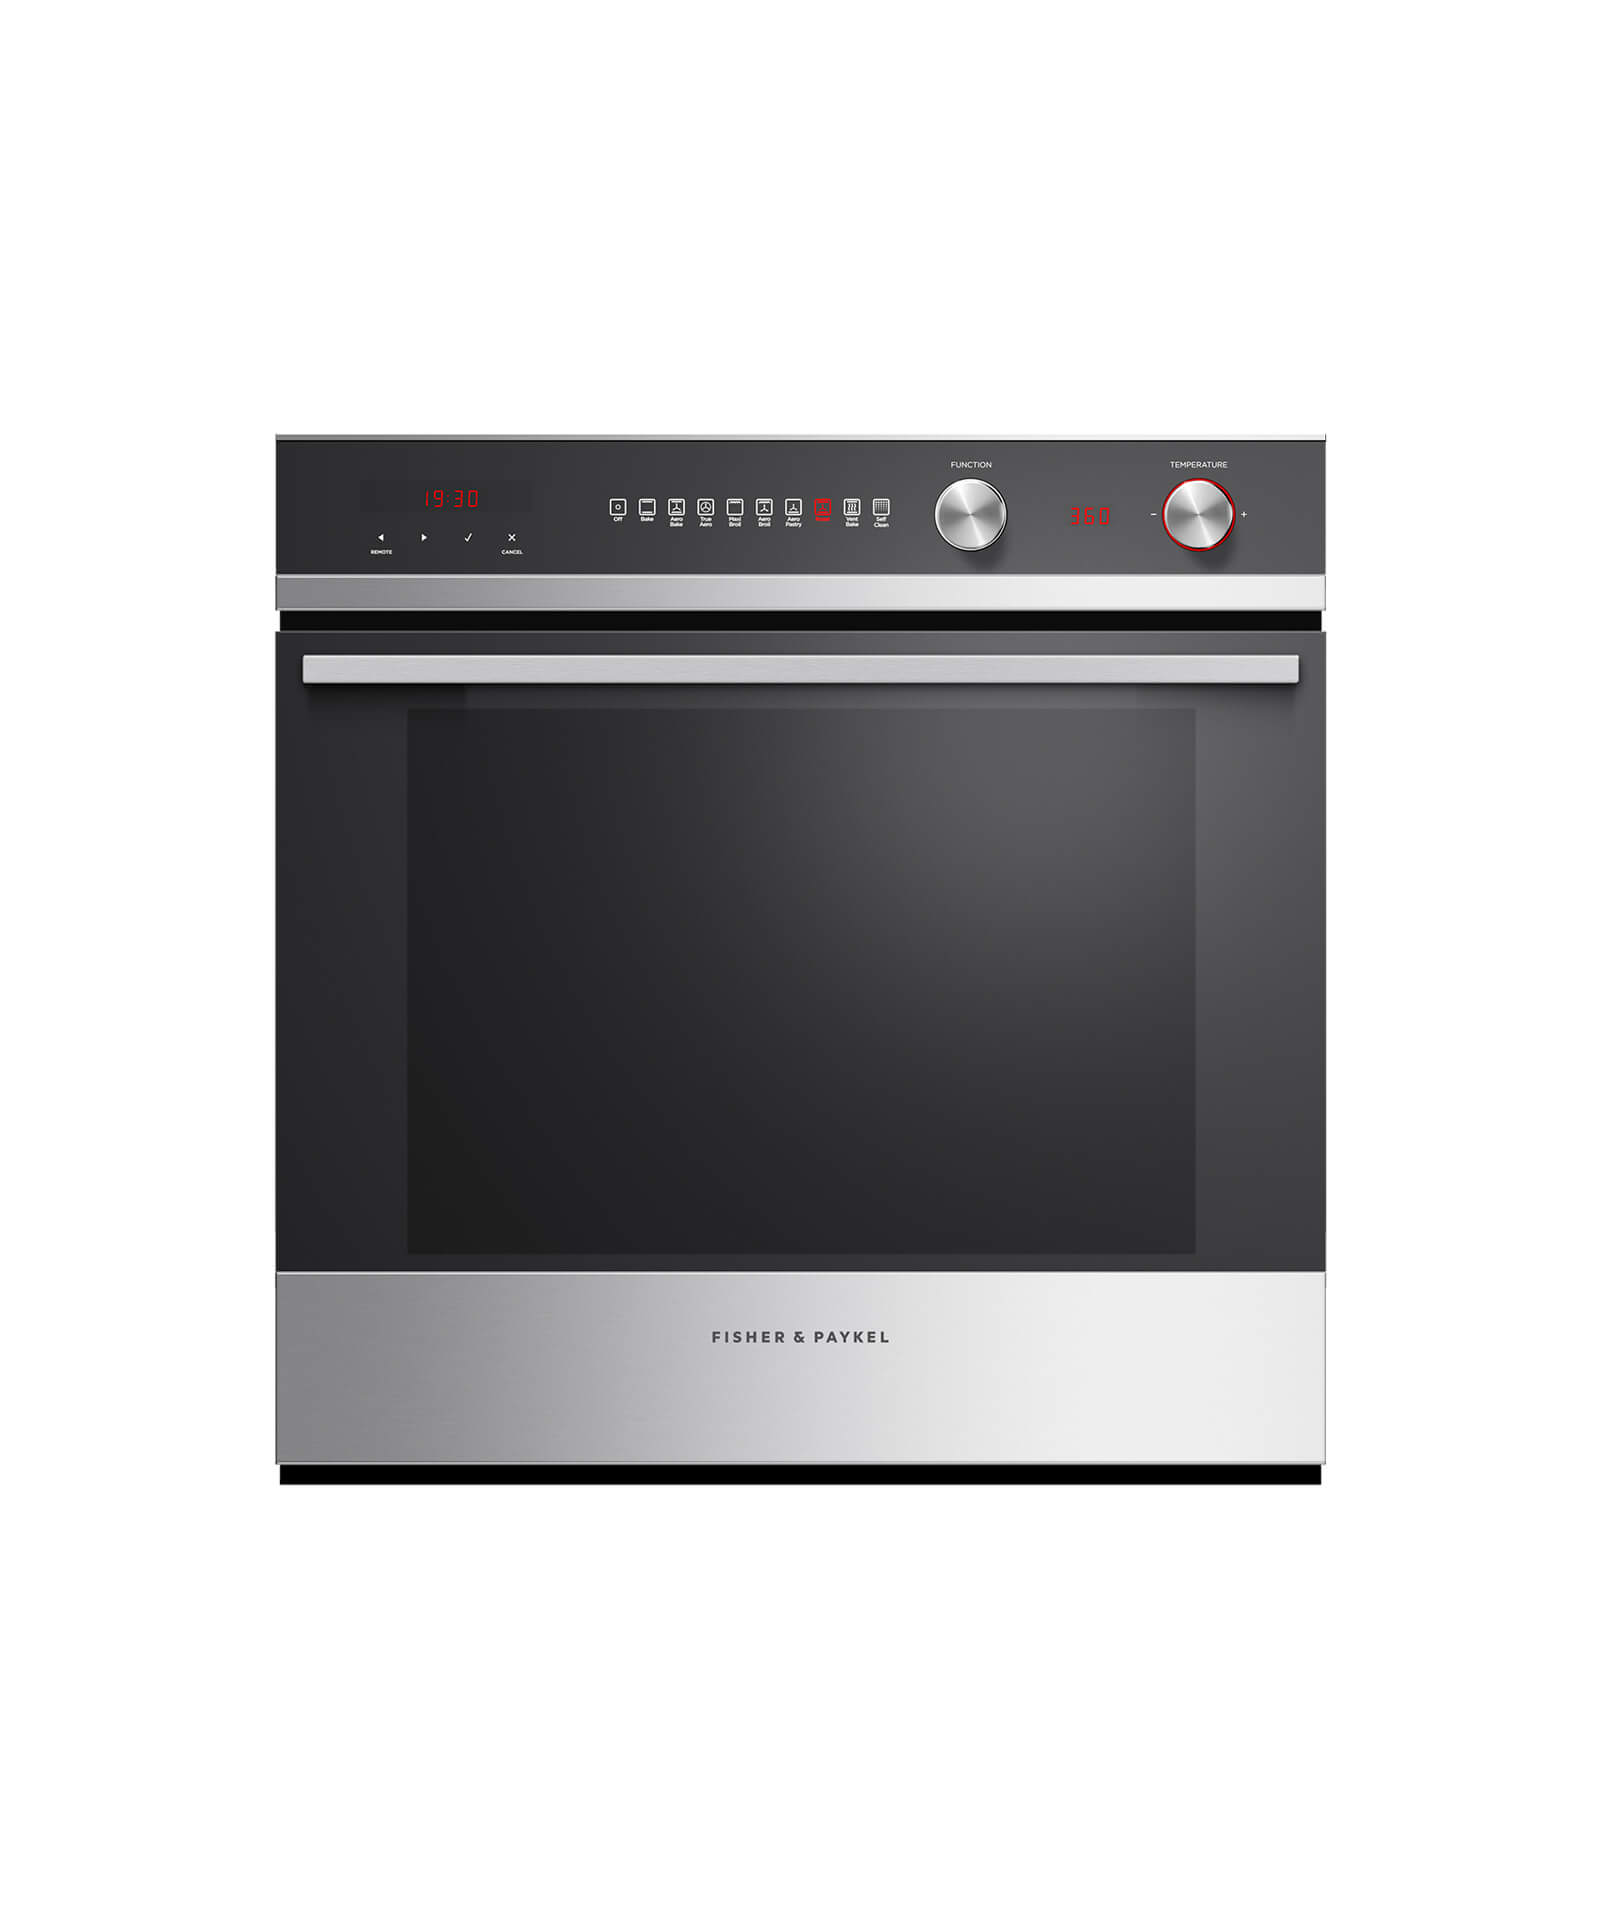 "Fisher and Paykel Built-in Oven, 24"", 3 cu ft, 9 Function, Self-cleaning"